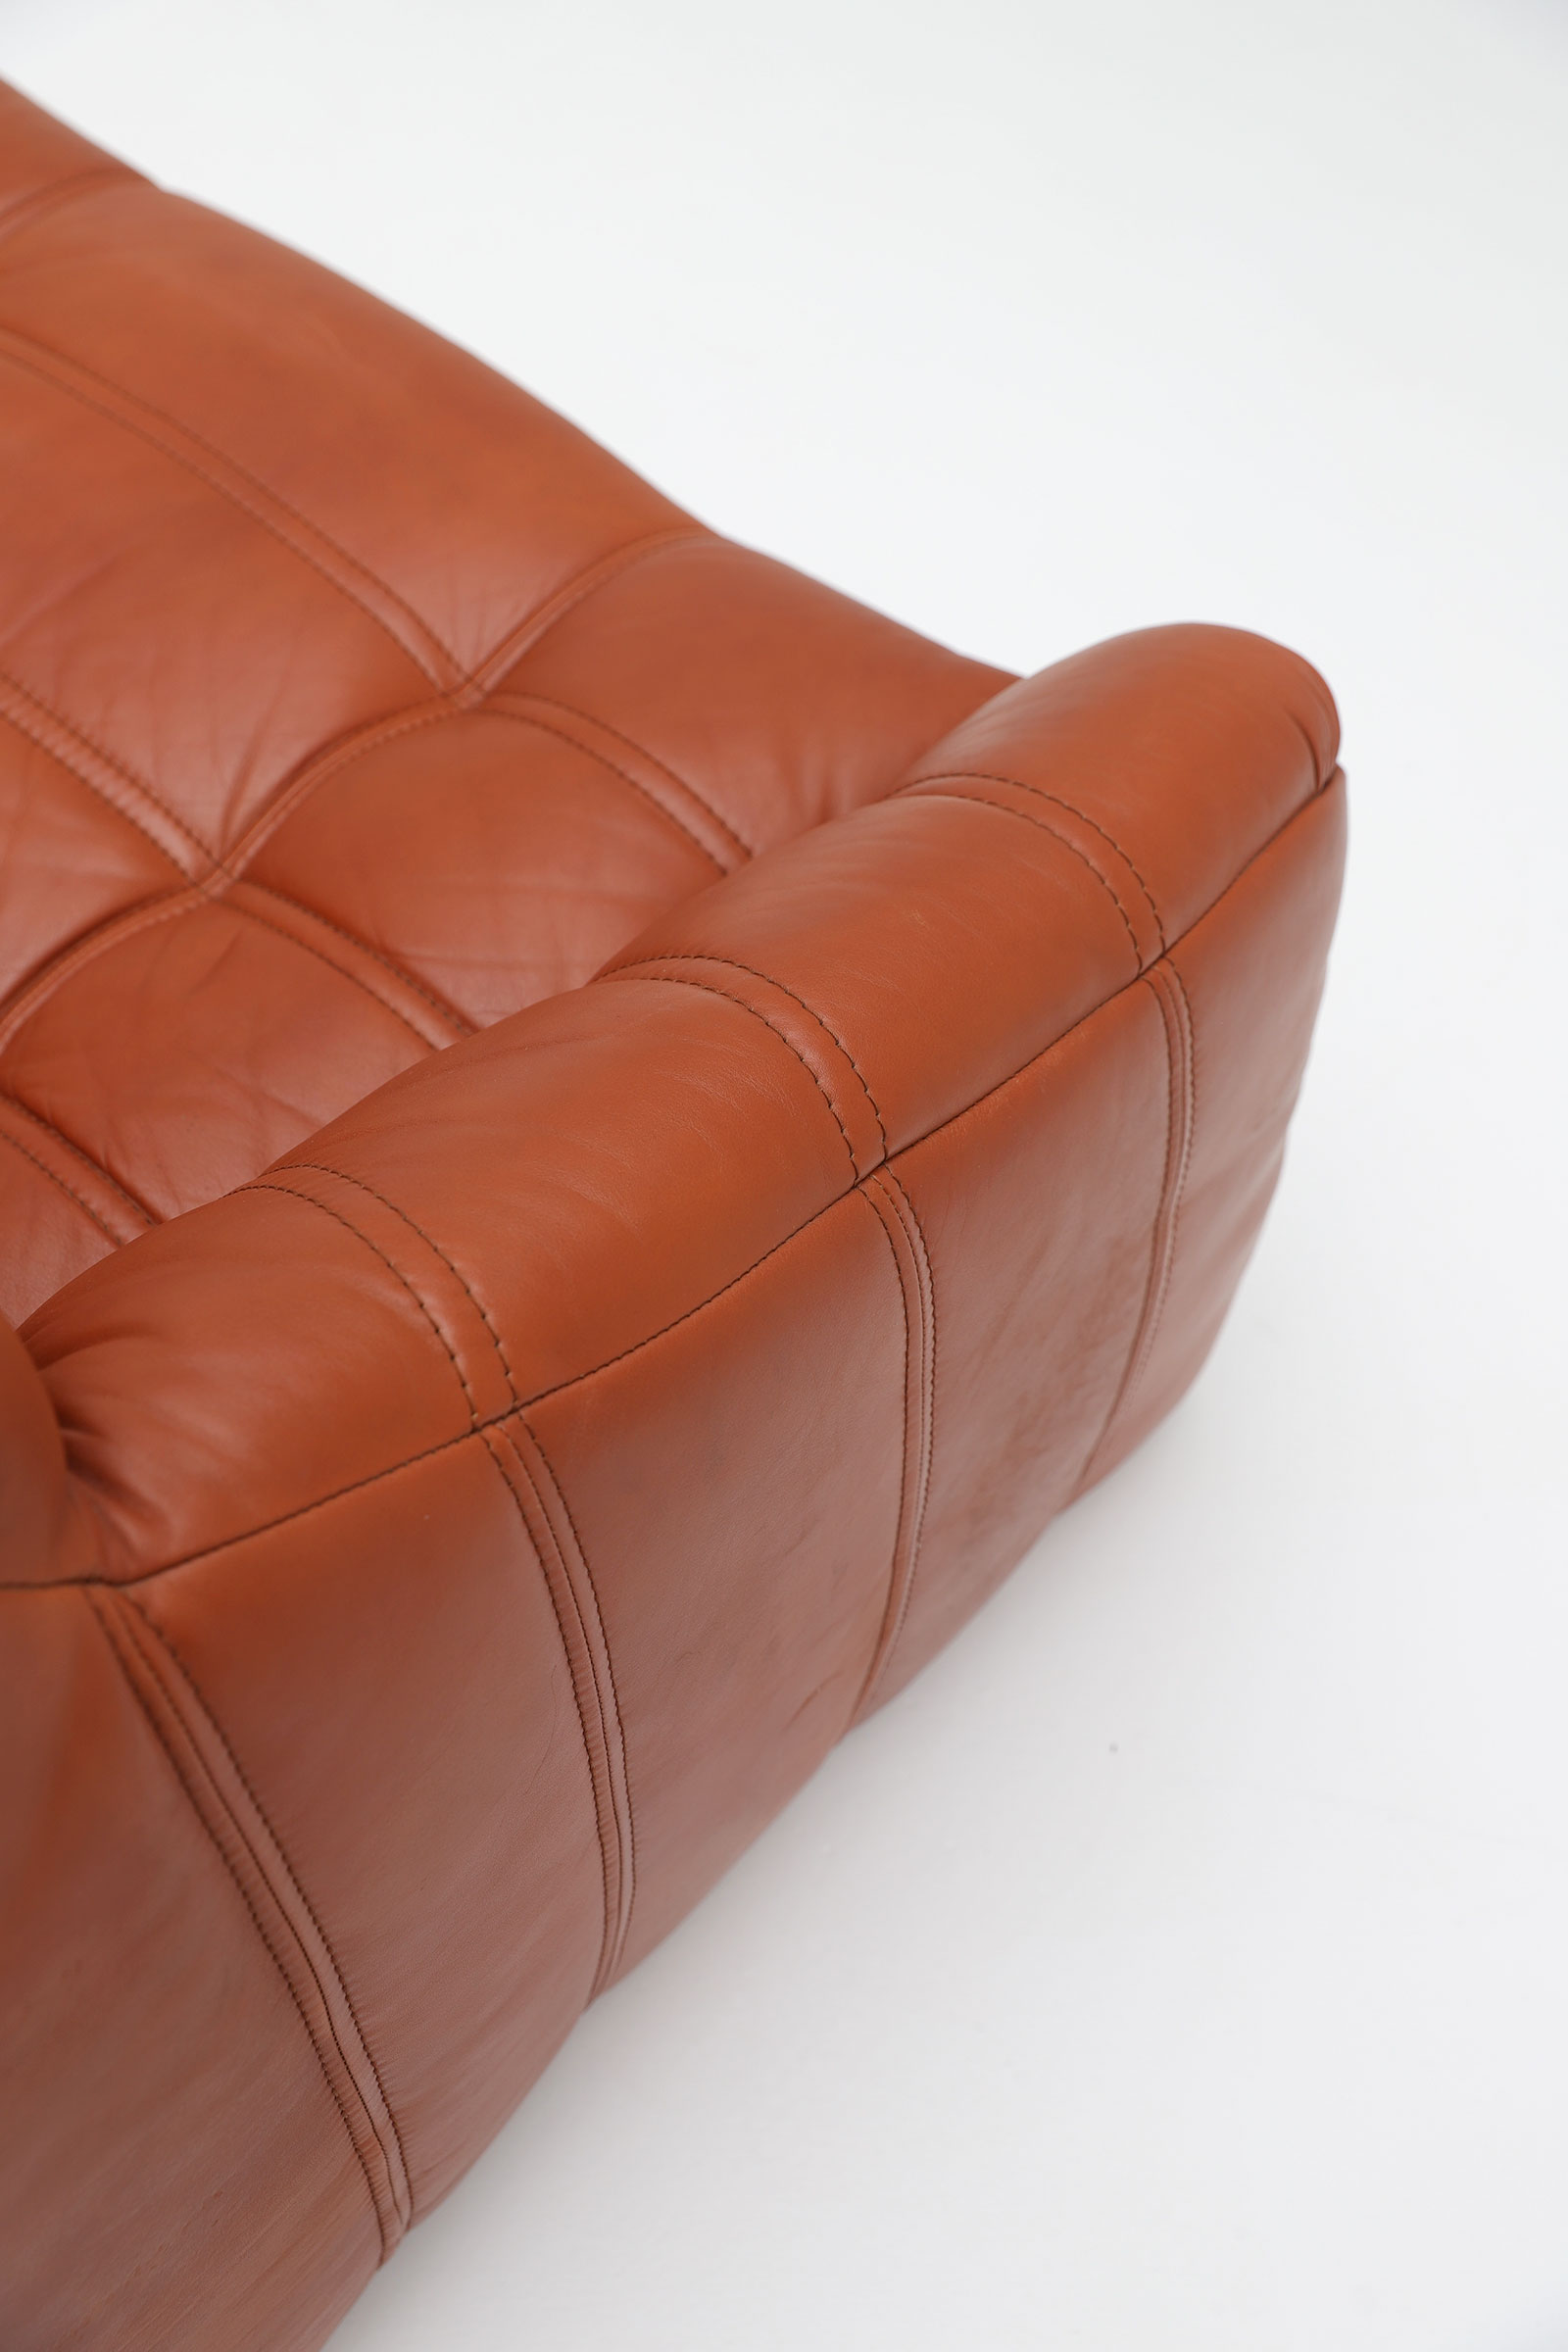 1970s Rolf Benz Leather Sofa